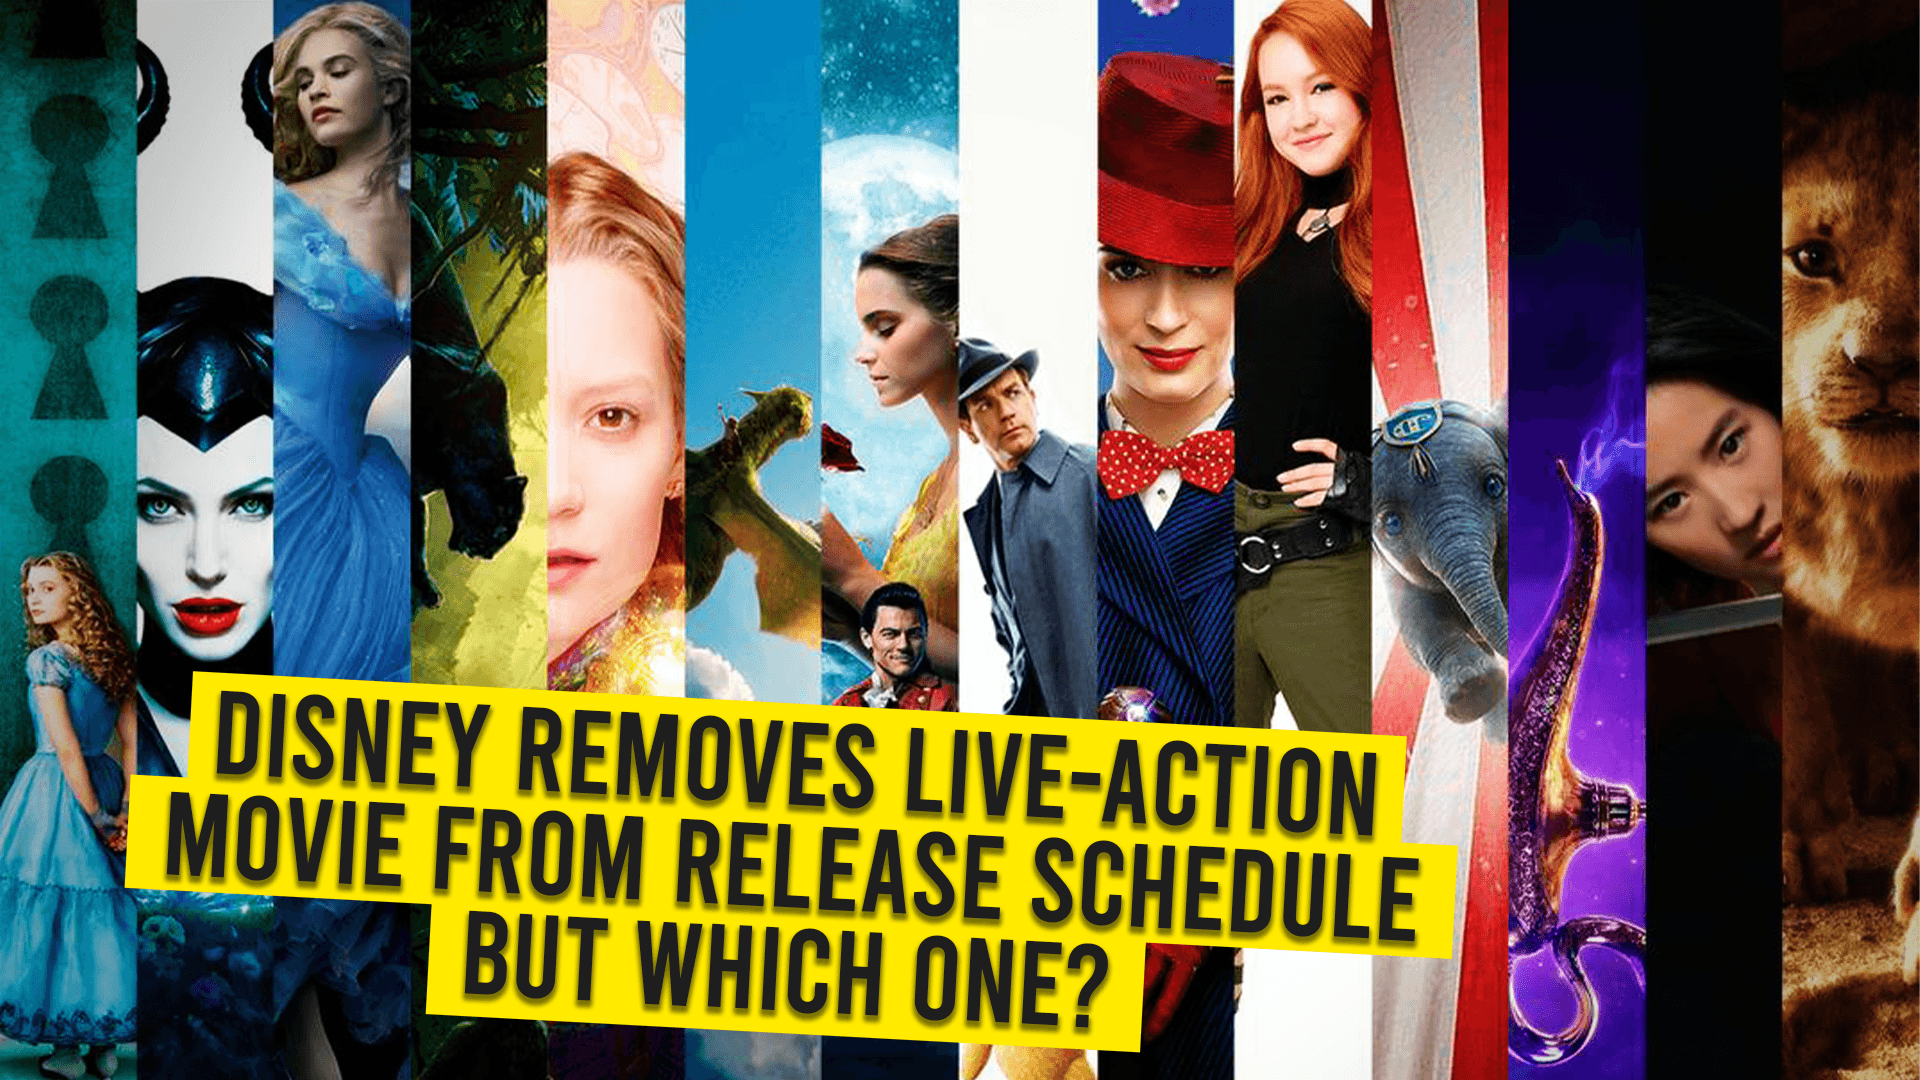 Disney Removes Live-Action Movie from Release Schedule – But Which One?